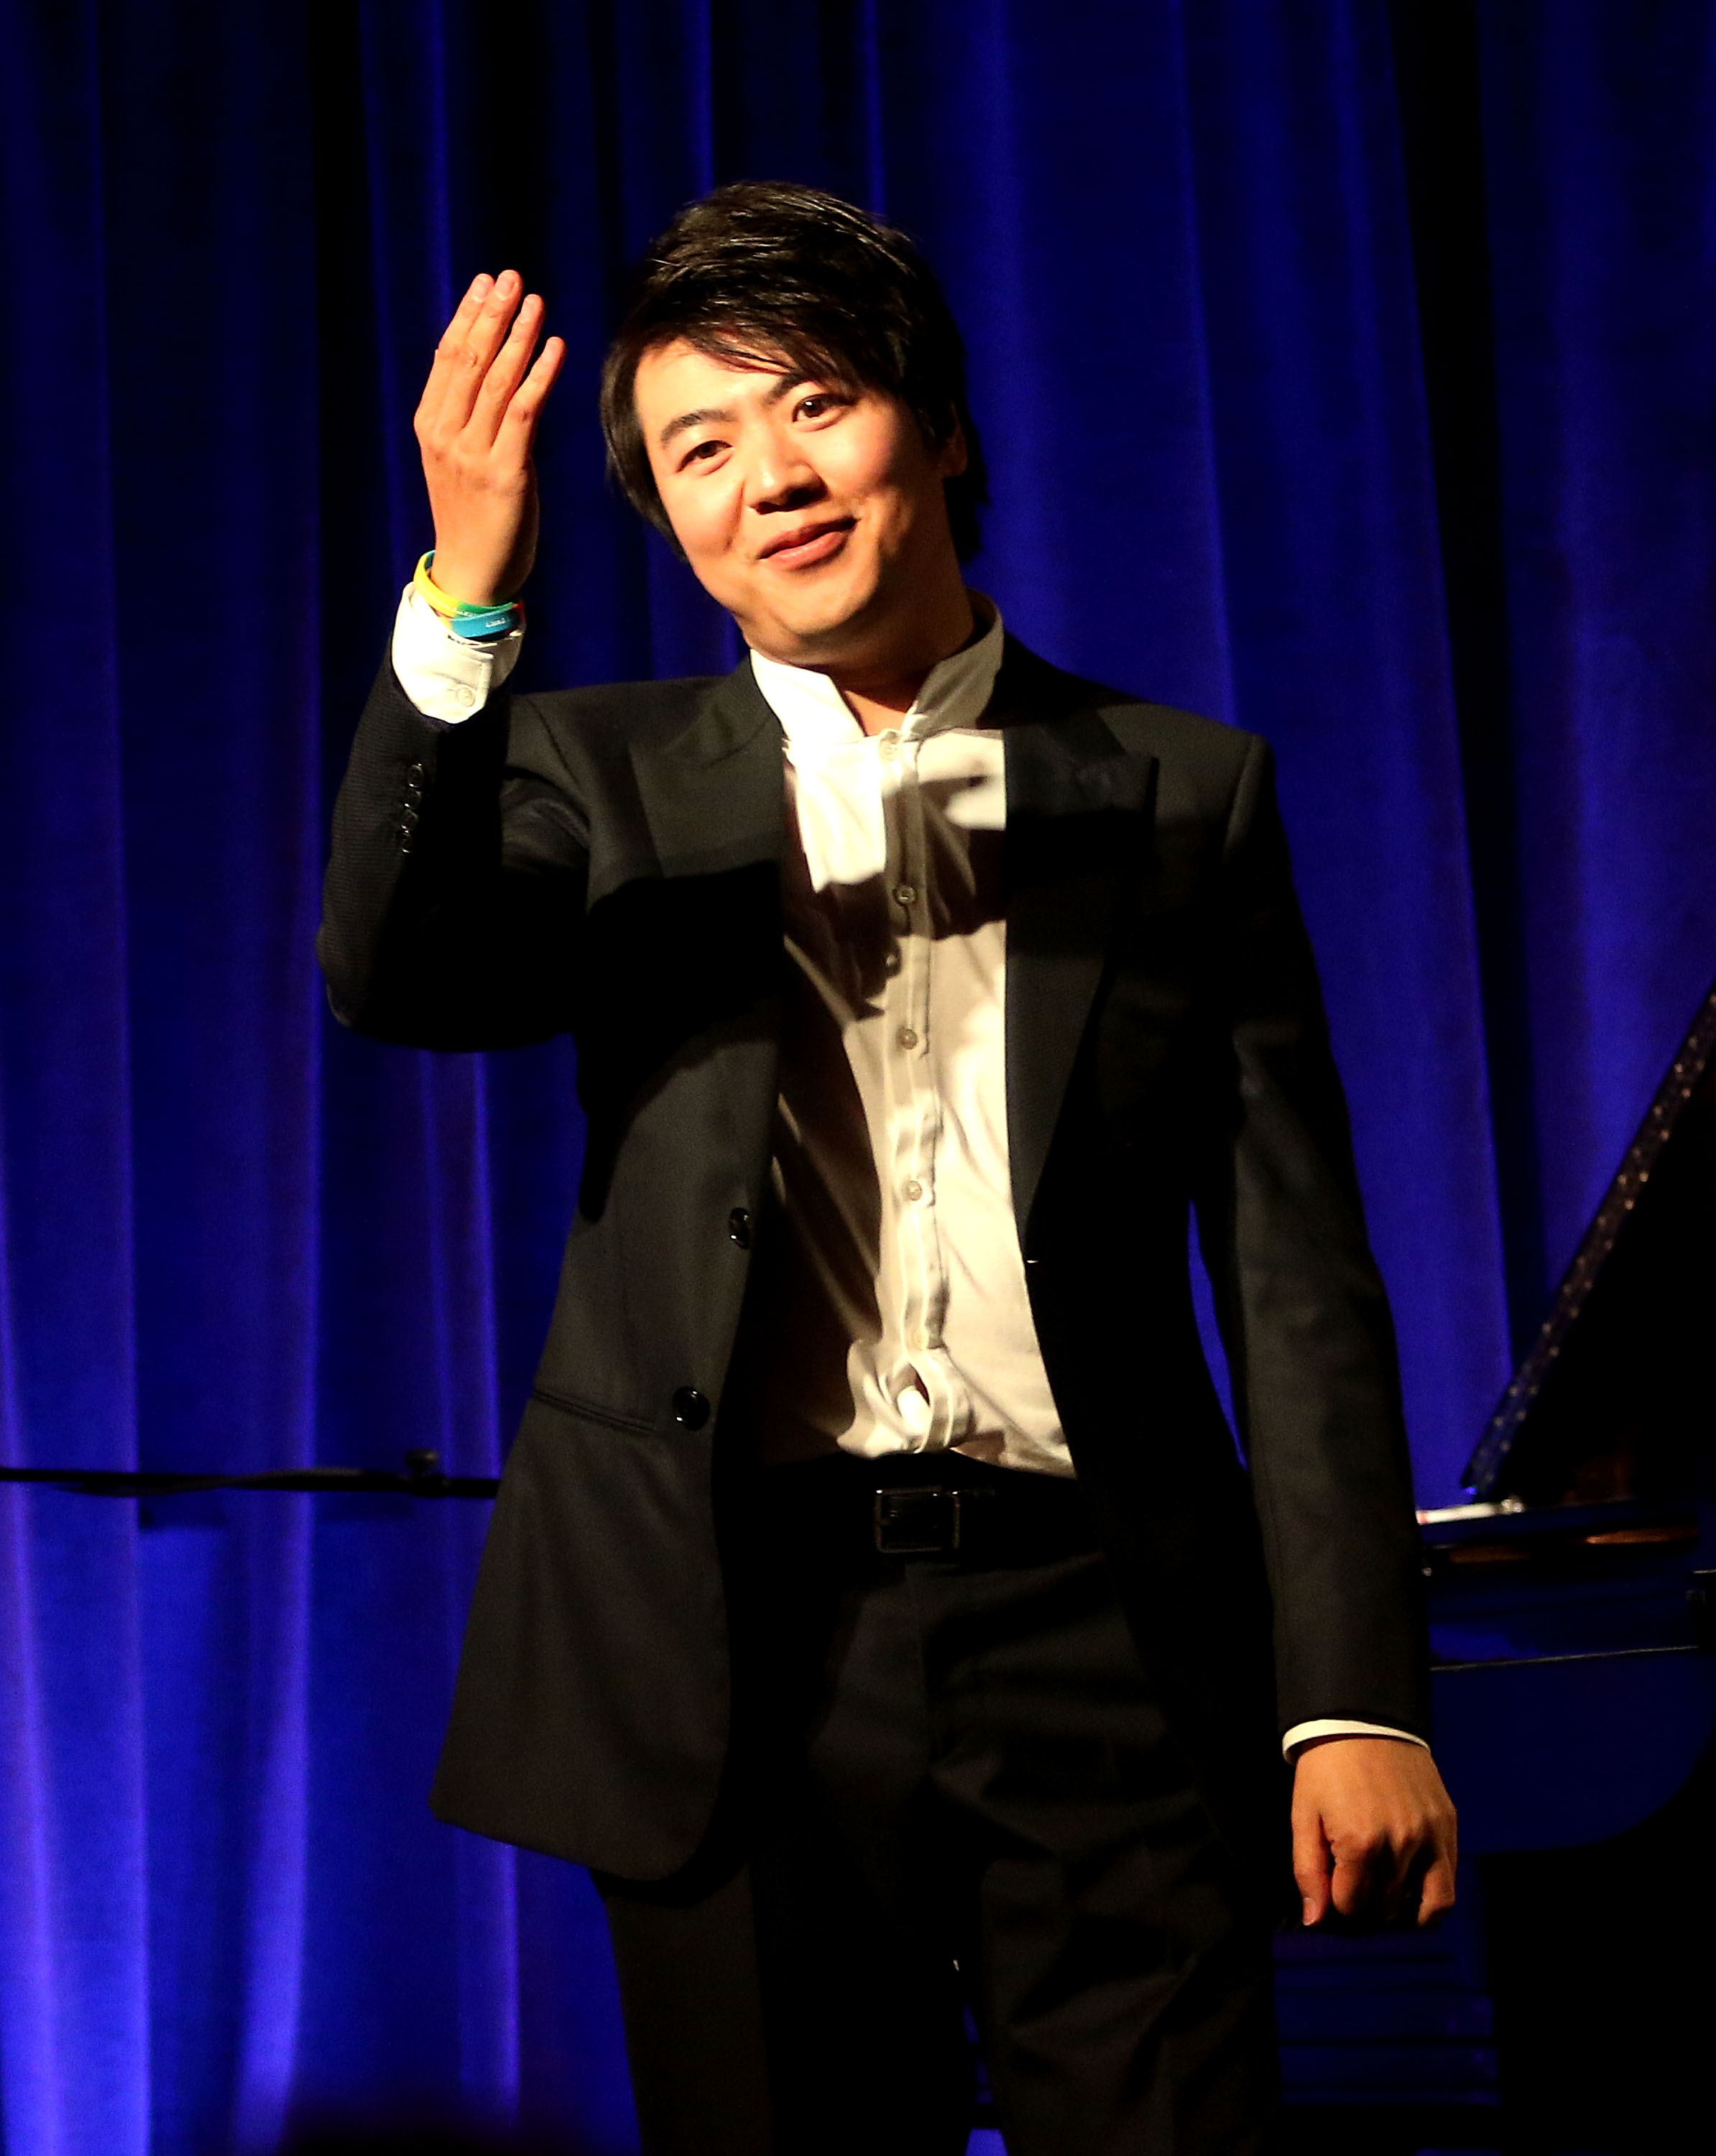 NEW YORK, NY - OCTOBER 17: Lang Lang attends the Lang Lang International Music Foundation Gala at Cipriani 25 Broadway on October 17, 2016 in New York City. (Photo by Laura Cavanaugh/Getty Images)